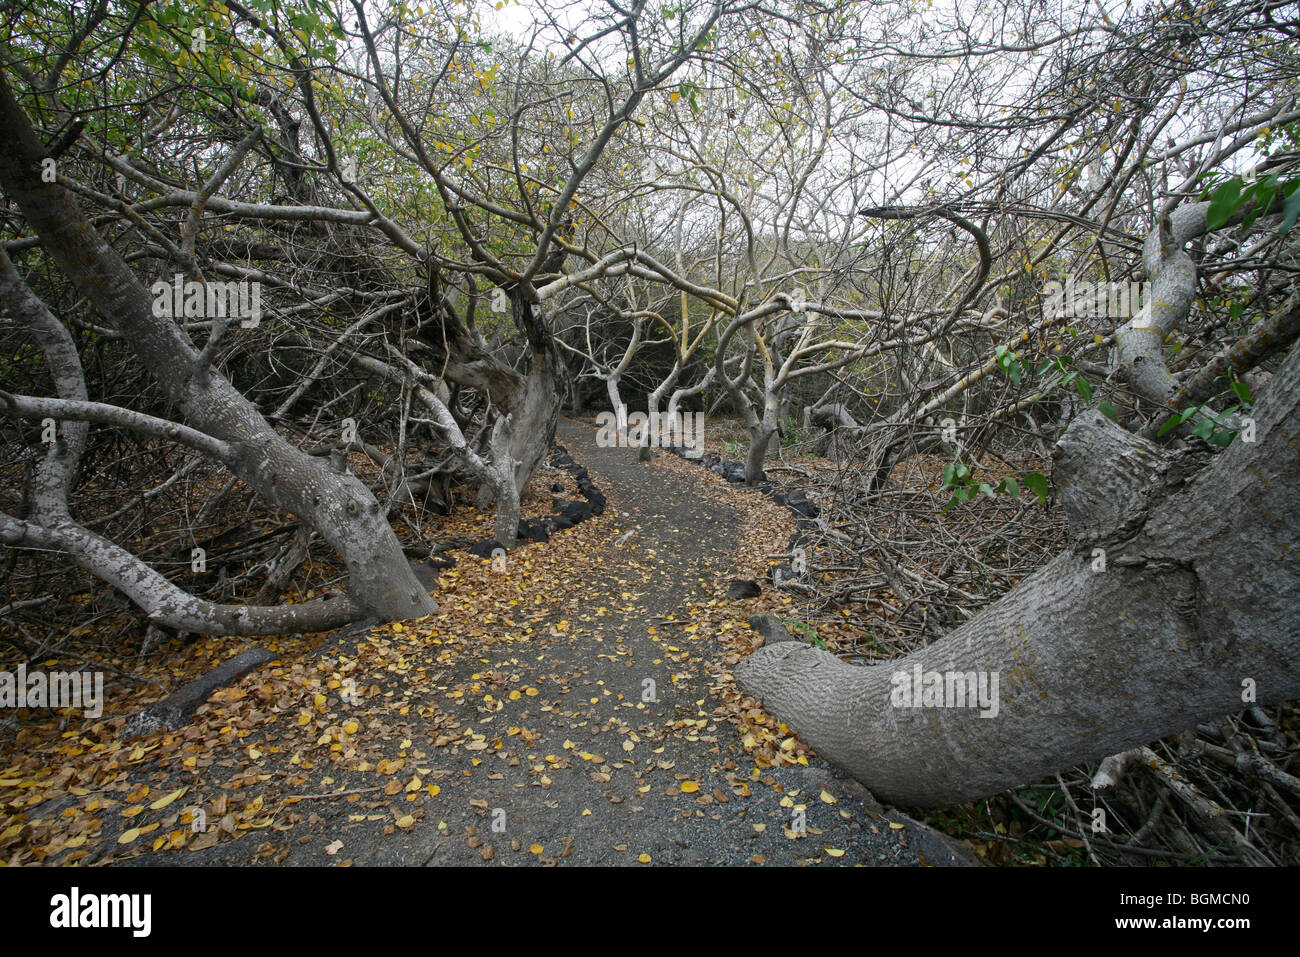 Path winding through forest with old trees on Isabela Island, Galápagos Islands, Ecuador, Latin America - Stock Image